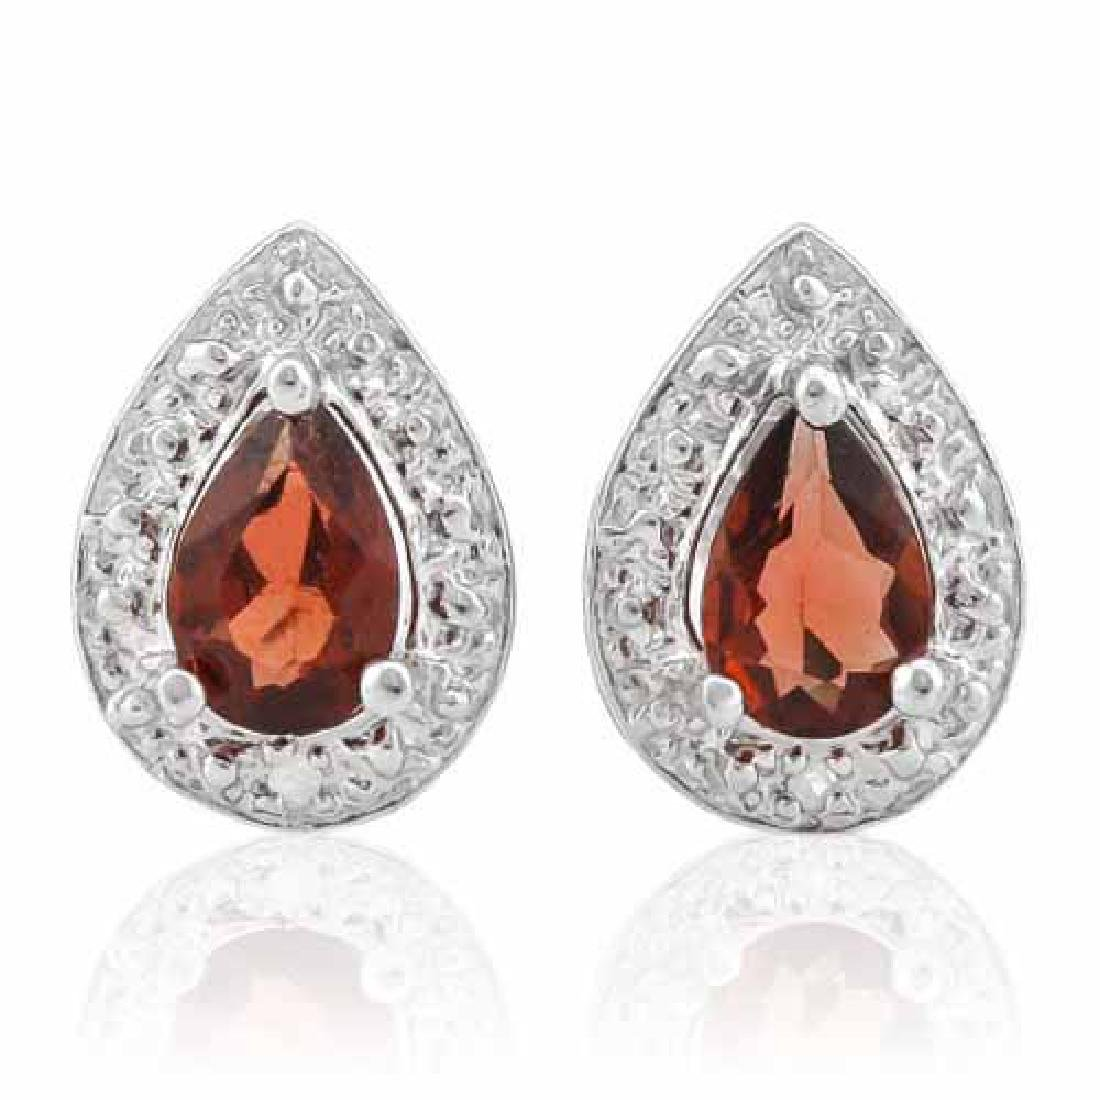 4/5 CARAT GARNET & DIAMOND 925 STERLING SILVER EARRINGS